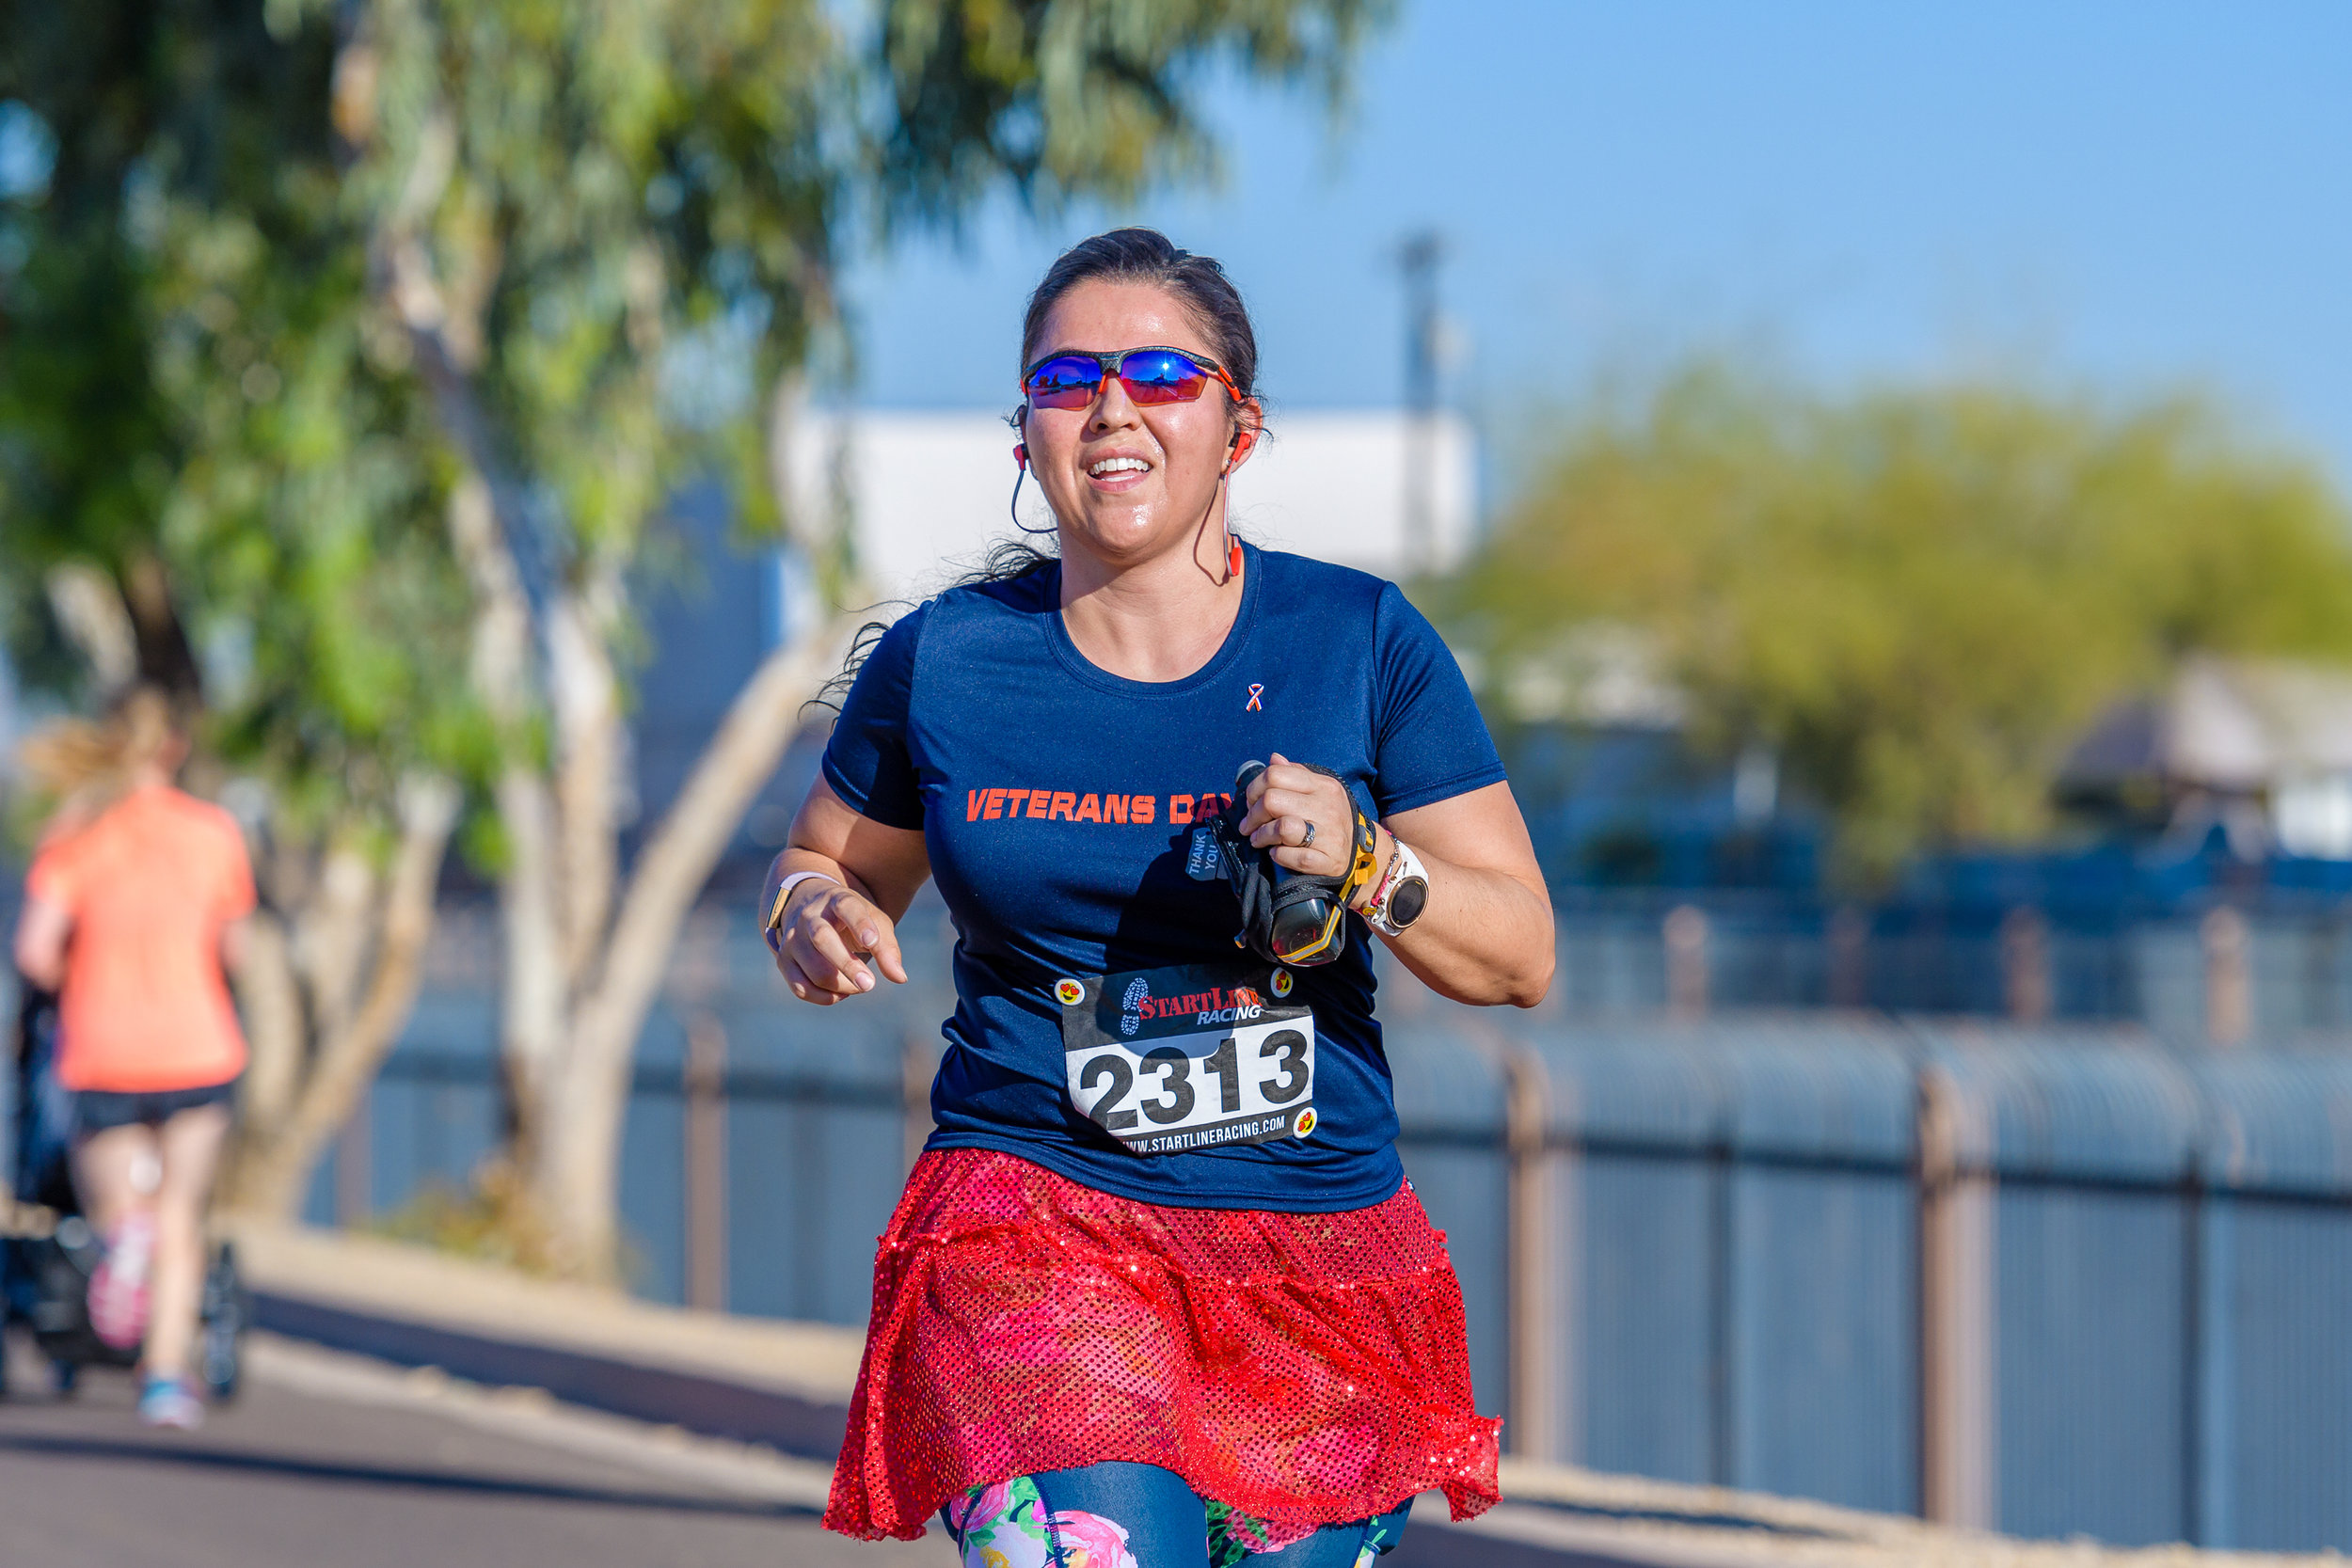 Steps for Vets 5k on May 5, 2018. Photo by Michael Smith Photography